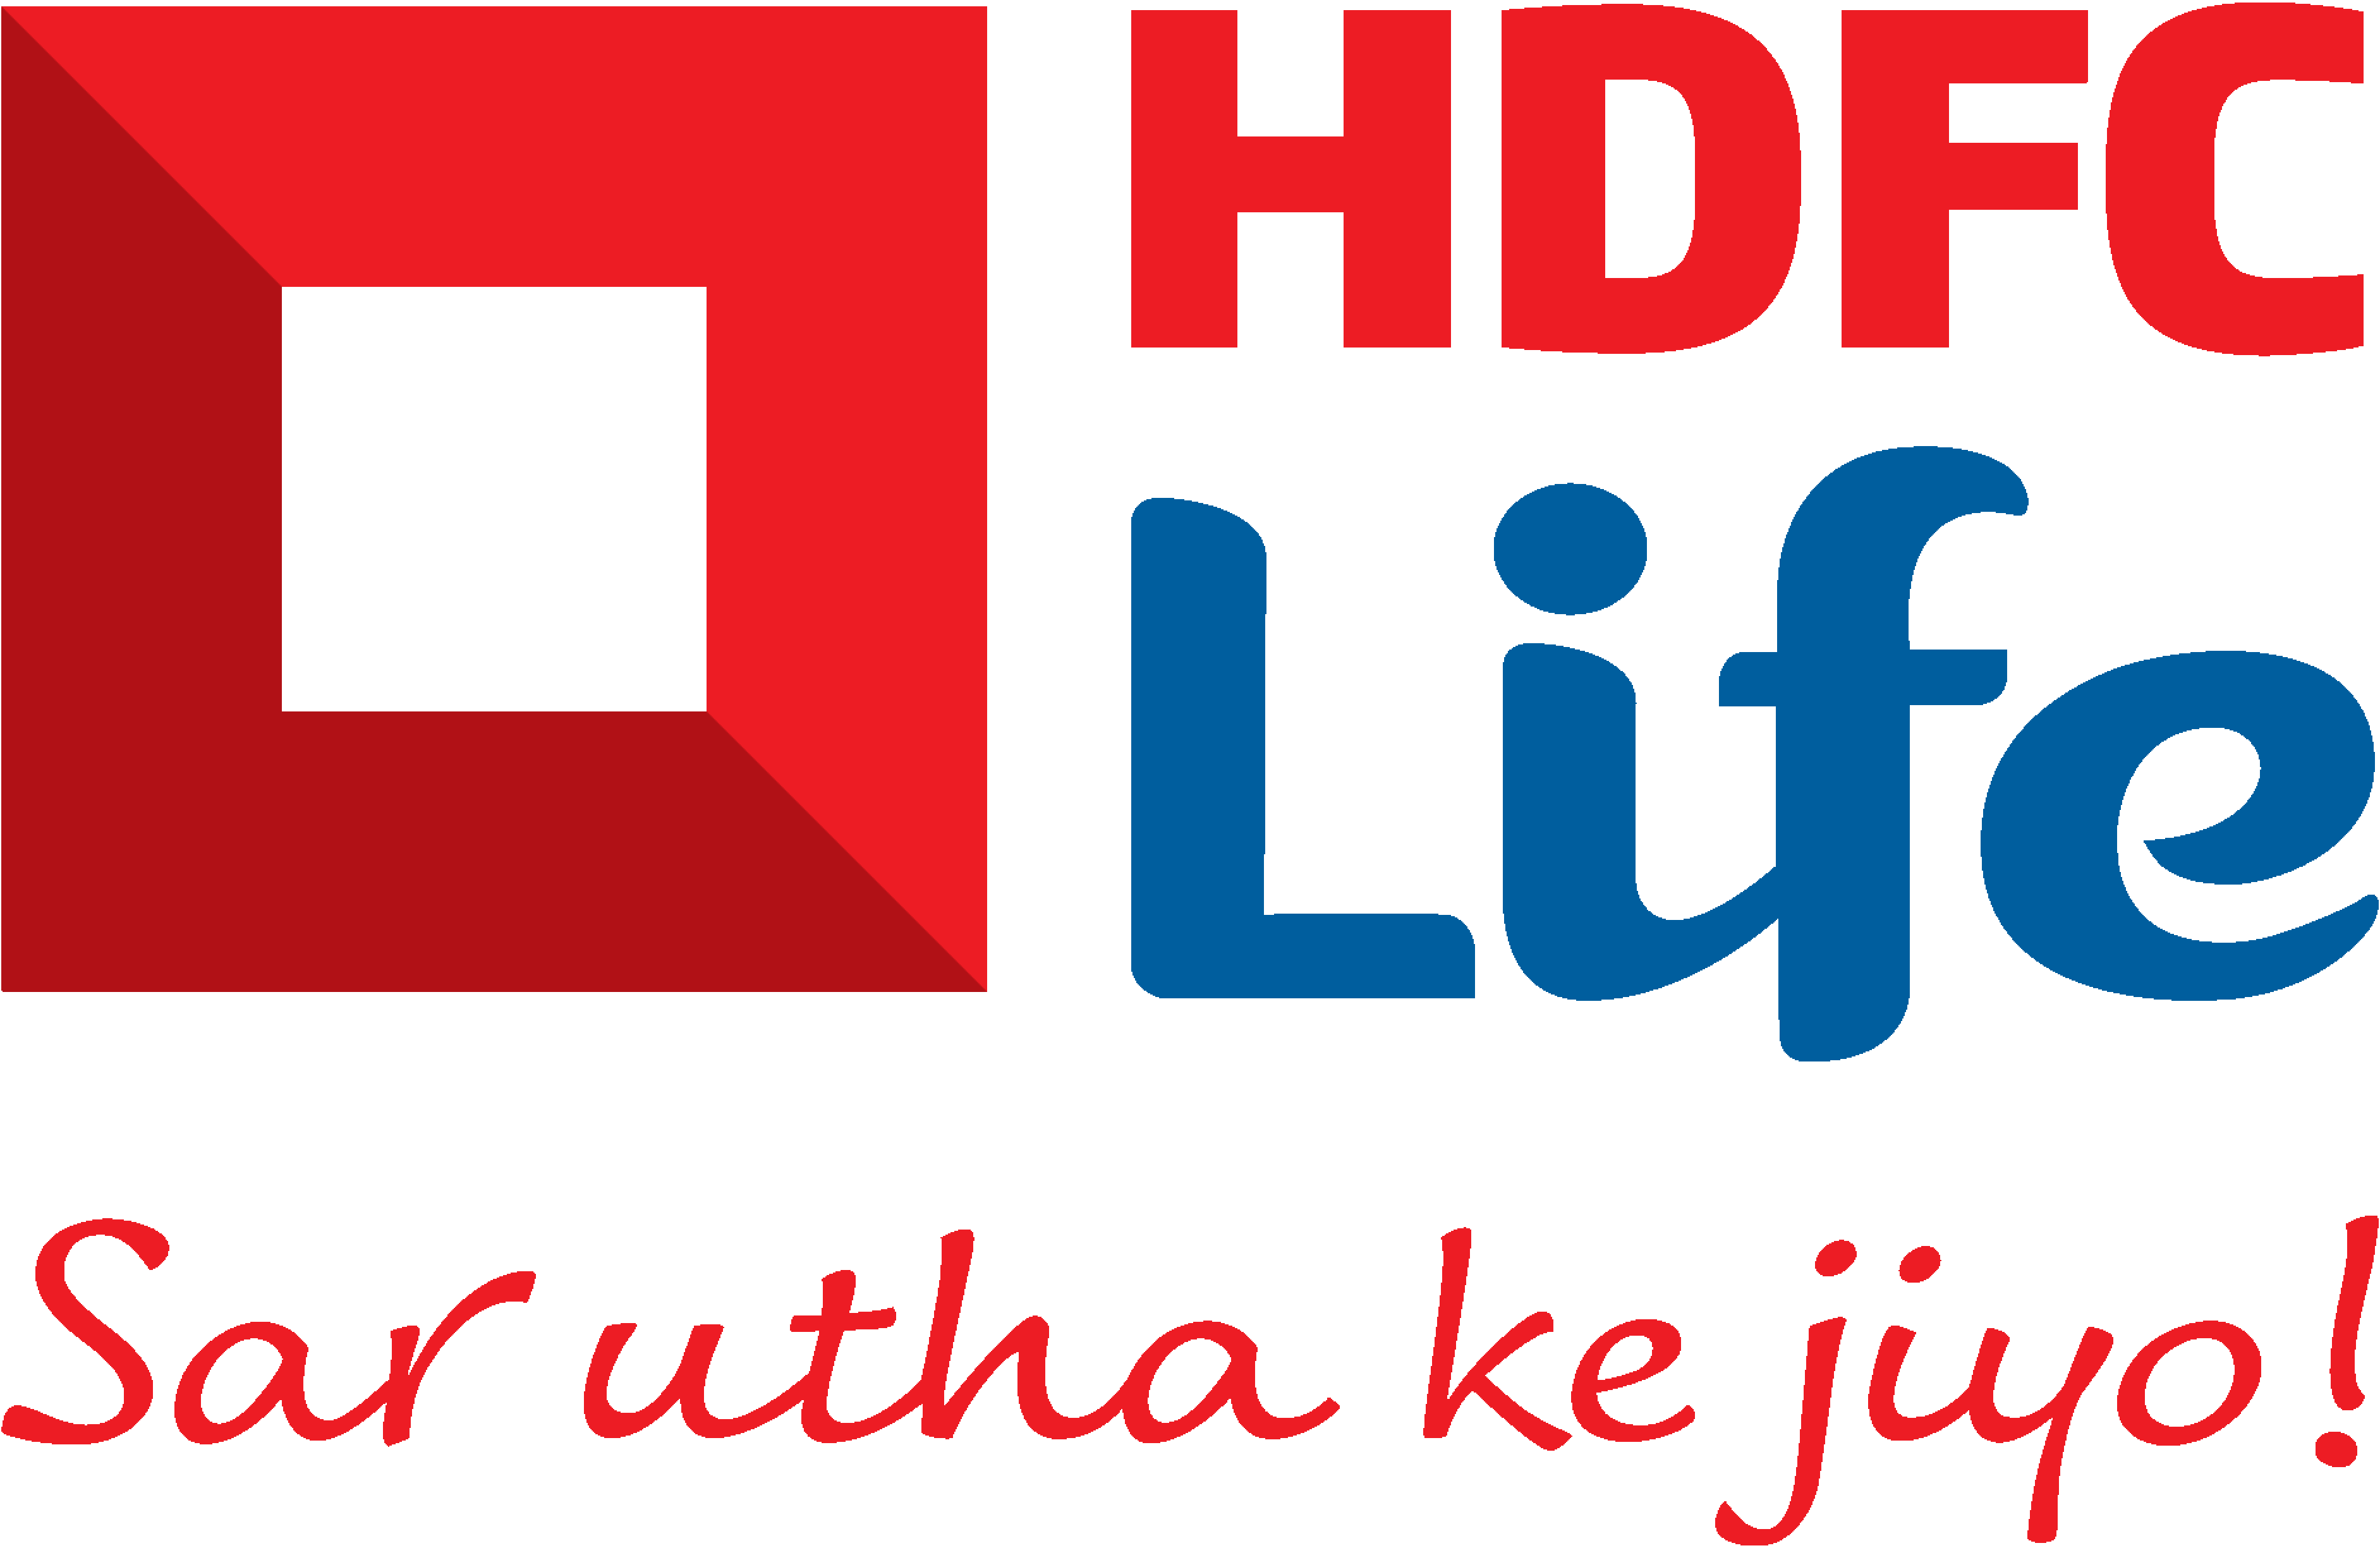 New Delhi Hdfc Bank Is In The Process Of Making The Personal Loan Approval Automated And The Task Will Be Done By None Other T Investing Mutuals Funds Equity